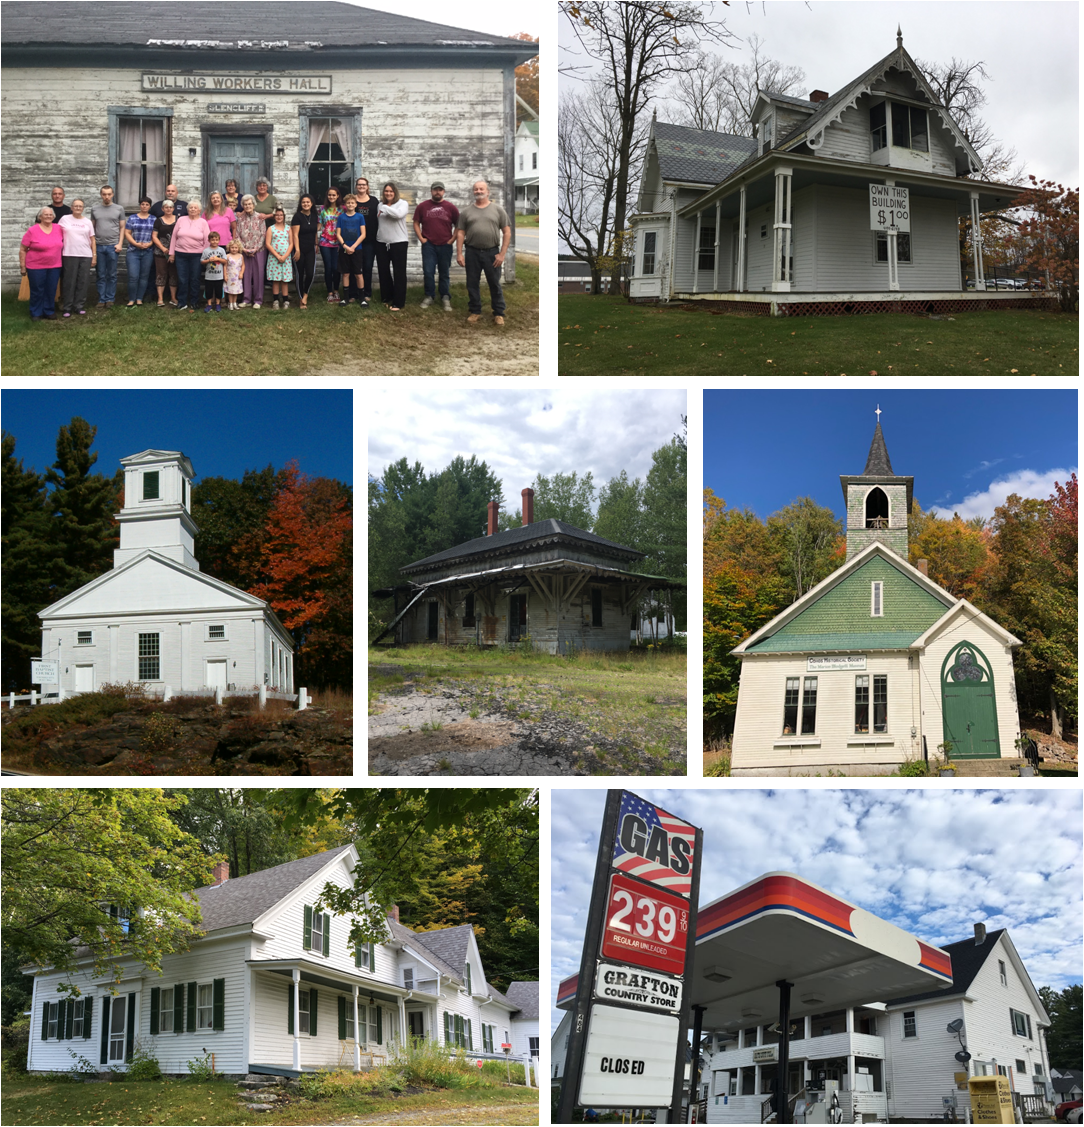 The list features a new group of endangered historic structures, from top left to right: Willing Workers Hall in Warren, Gothic Cottage on the Chesterfield common, First Baptist Church in Gilmanton, Ossipee Depot, Marion Blodgett Museum in Stratford, former home of poets Donald Hall and Jane Kenyon, and general stores statewide.